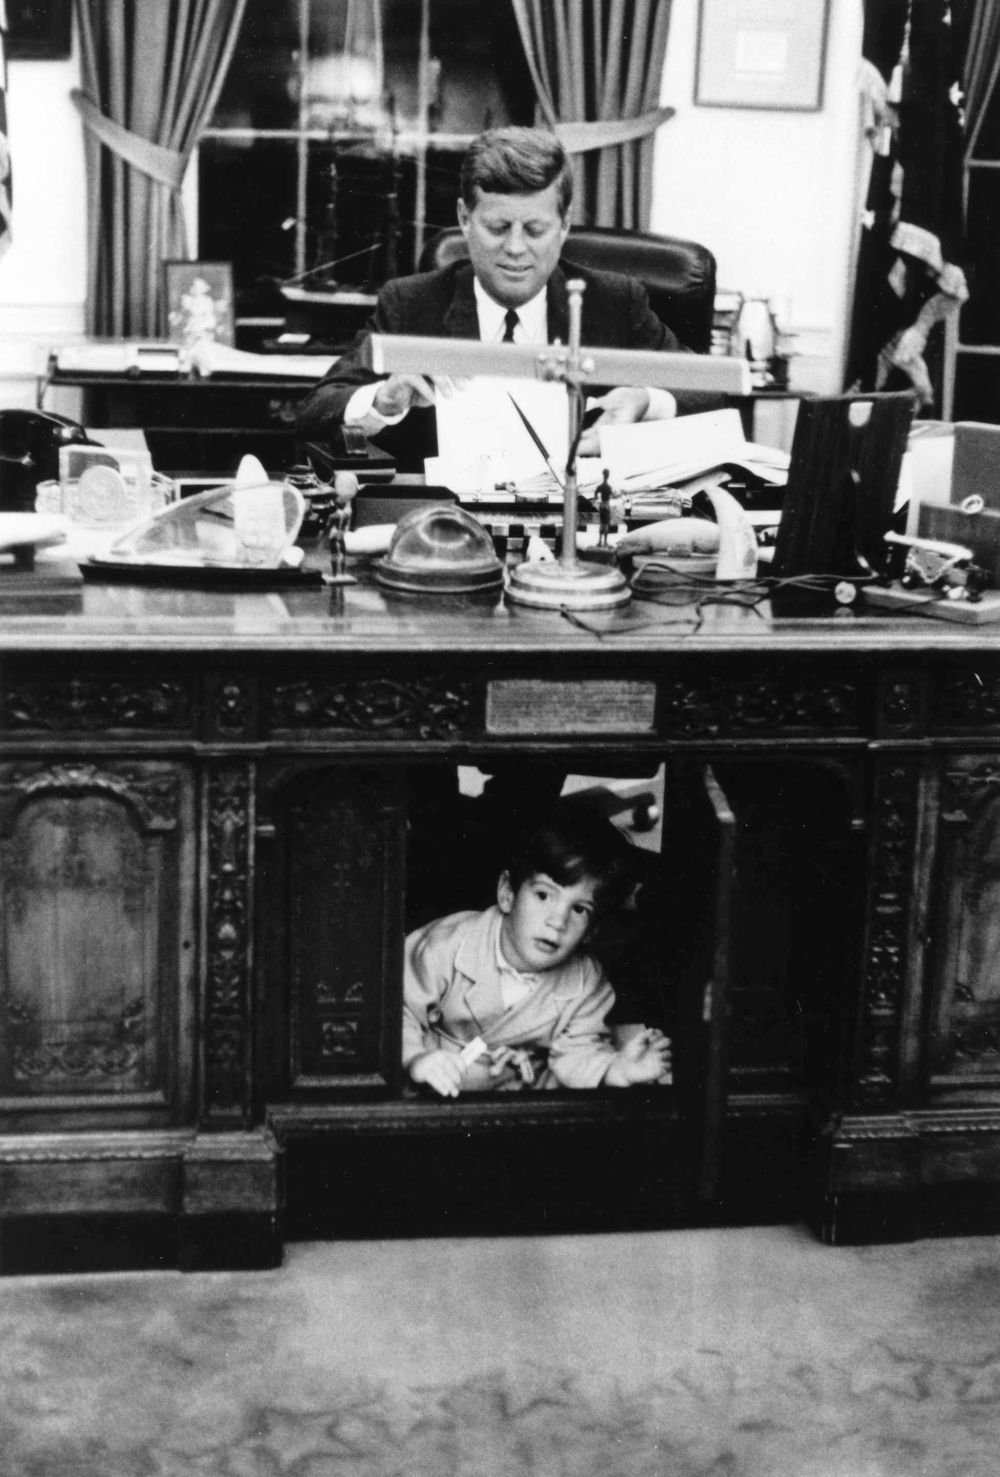 aliexpresscom buy 112 diy miniature doll house. President John F Kennedy And Jr In The Oval Office Photo By Stanley Tretick  Look Magazine Aliexpresscom Buy 112 Diy Miniature Doll House A